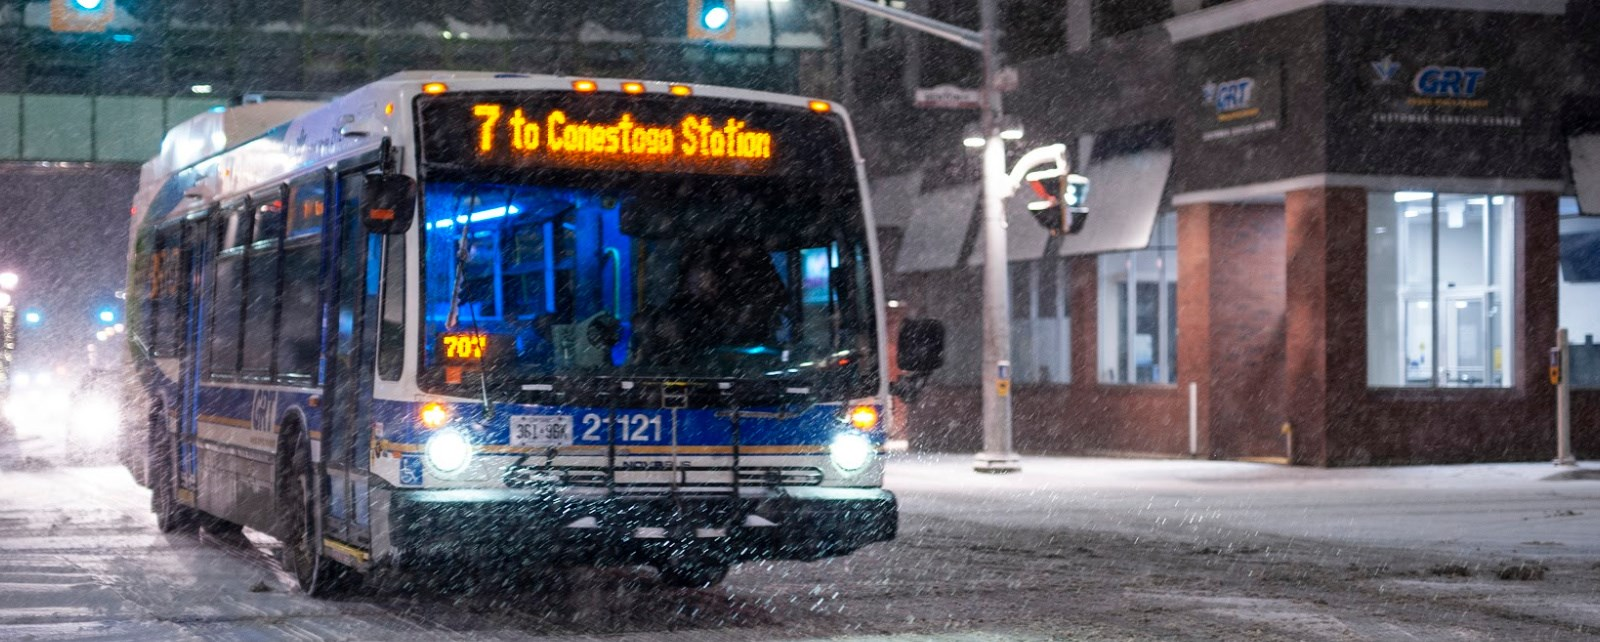 Image of GRT bus at night